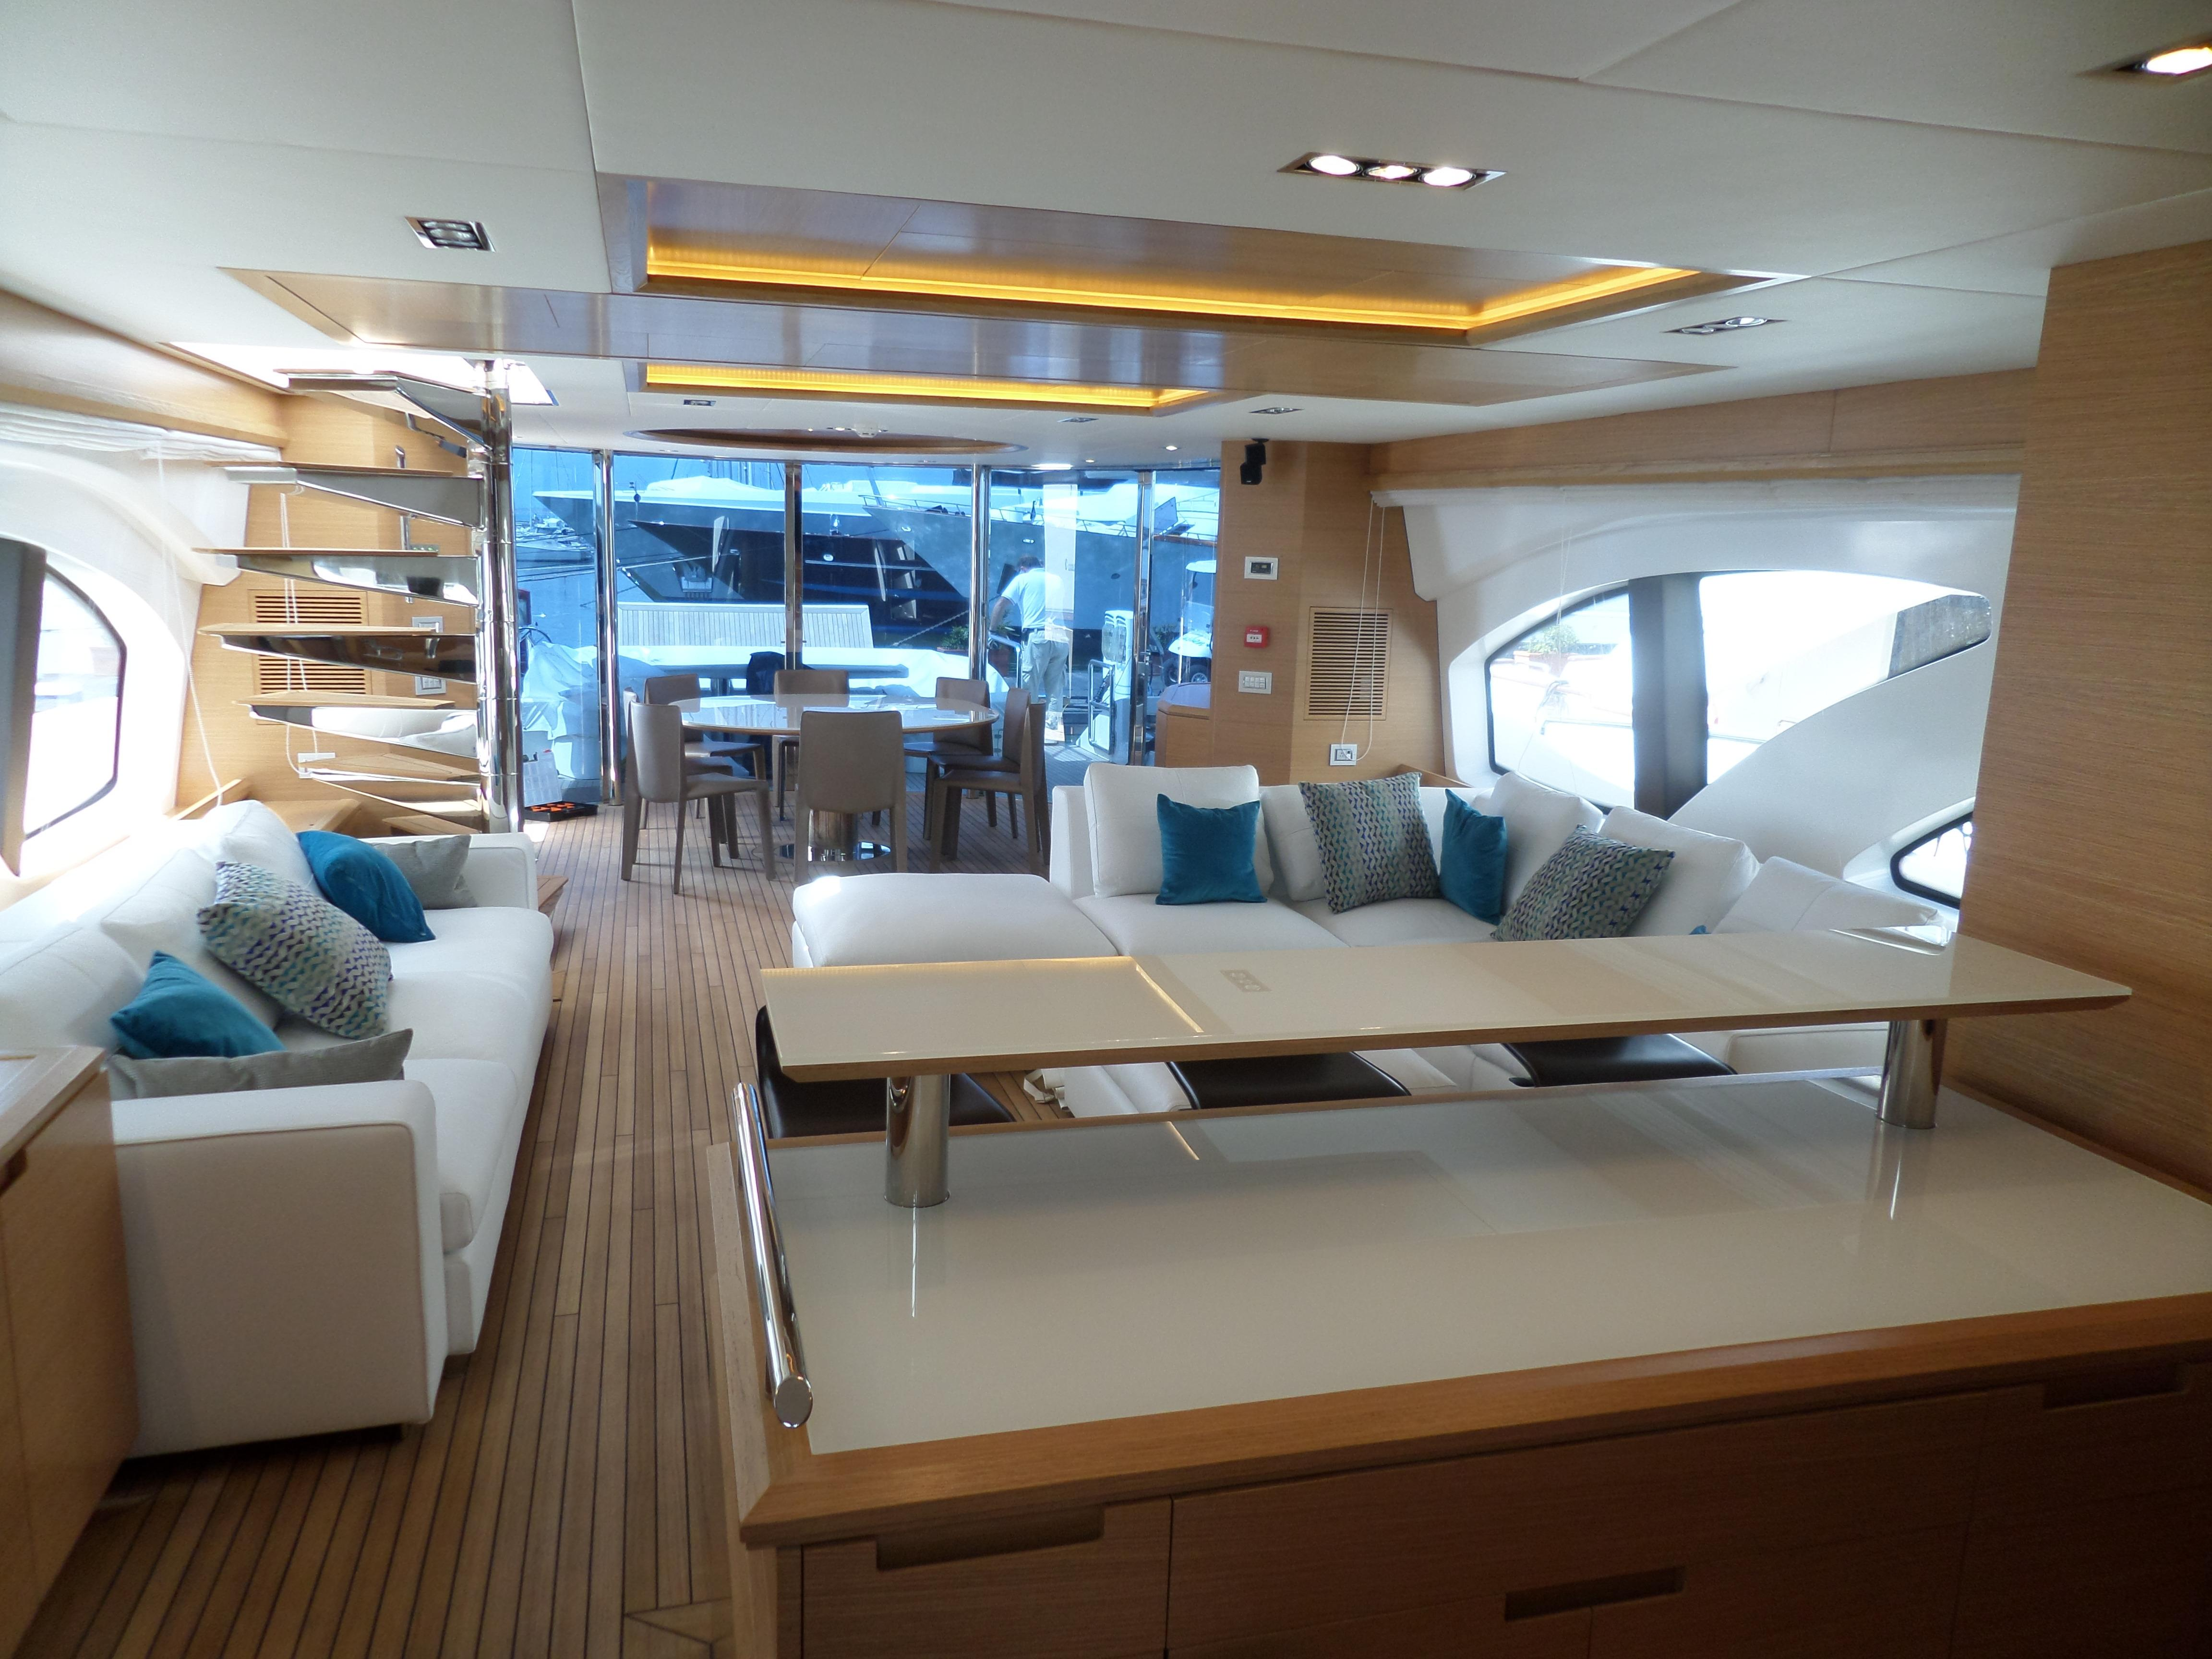 Starboard Side Dinette and Table,  Settee on Port Side. Large Windows